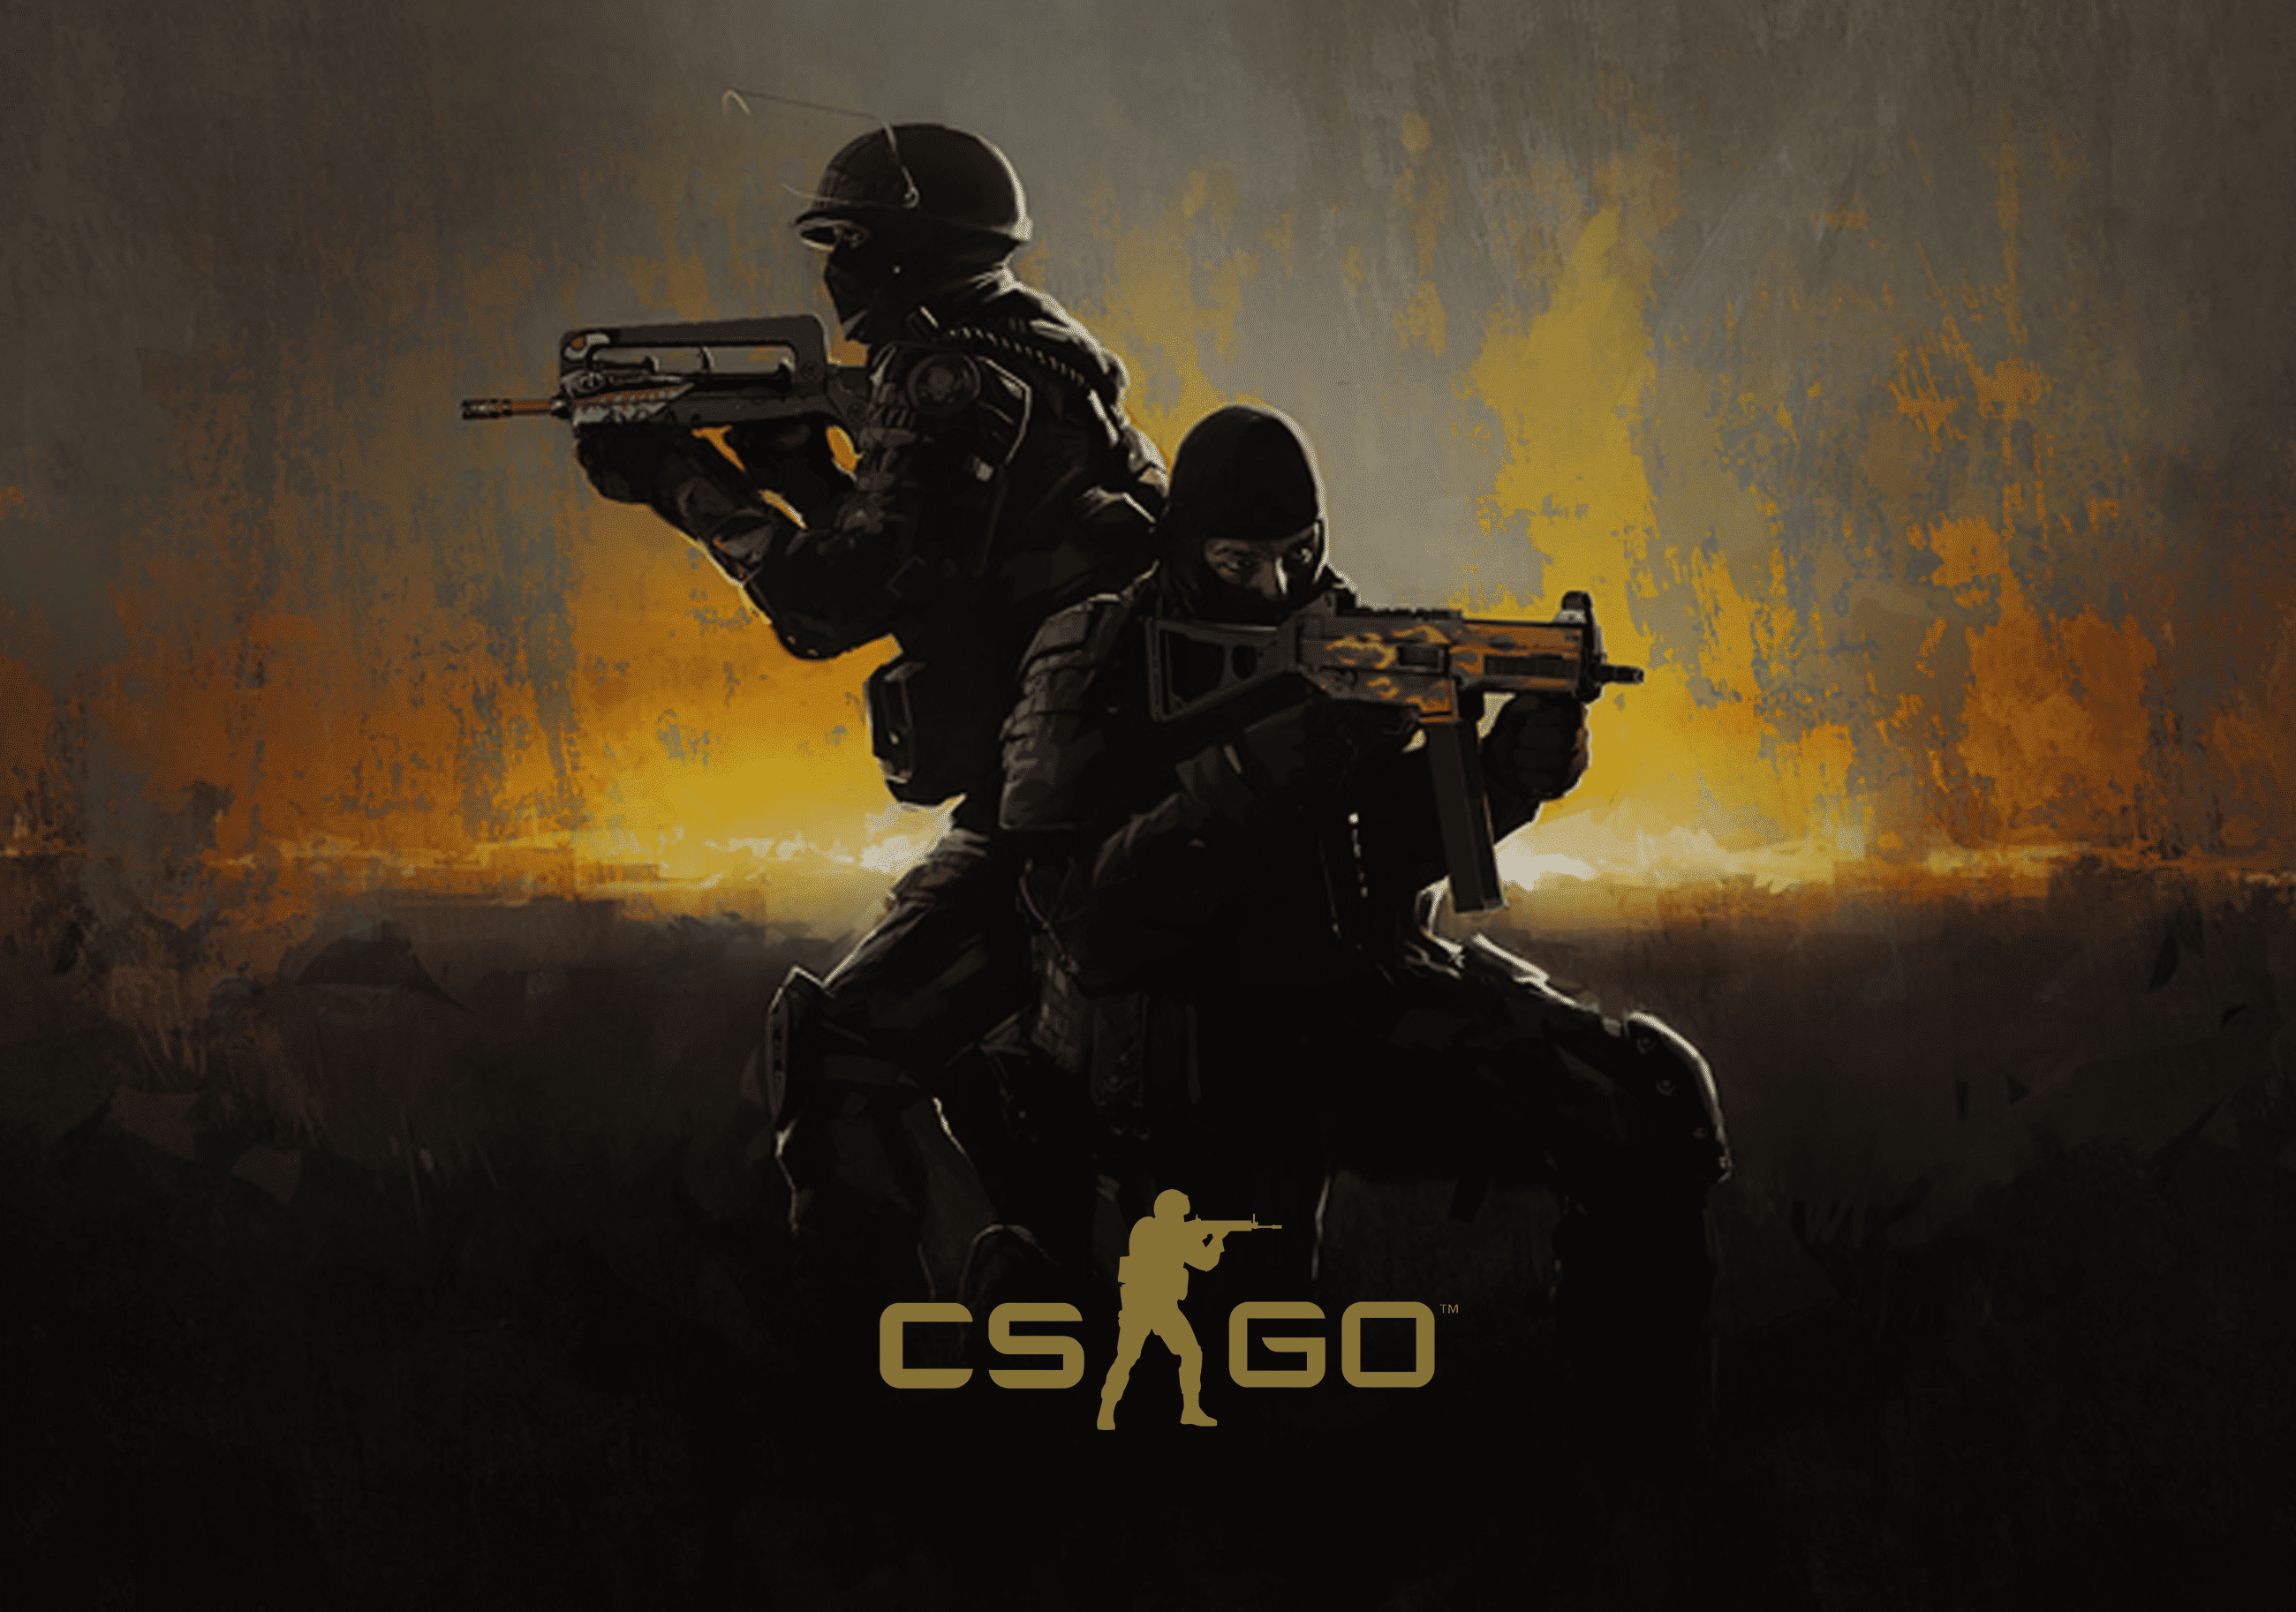 CS:Go Promo Banner with game logo in the foreground